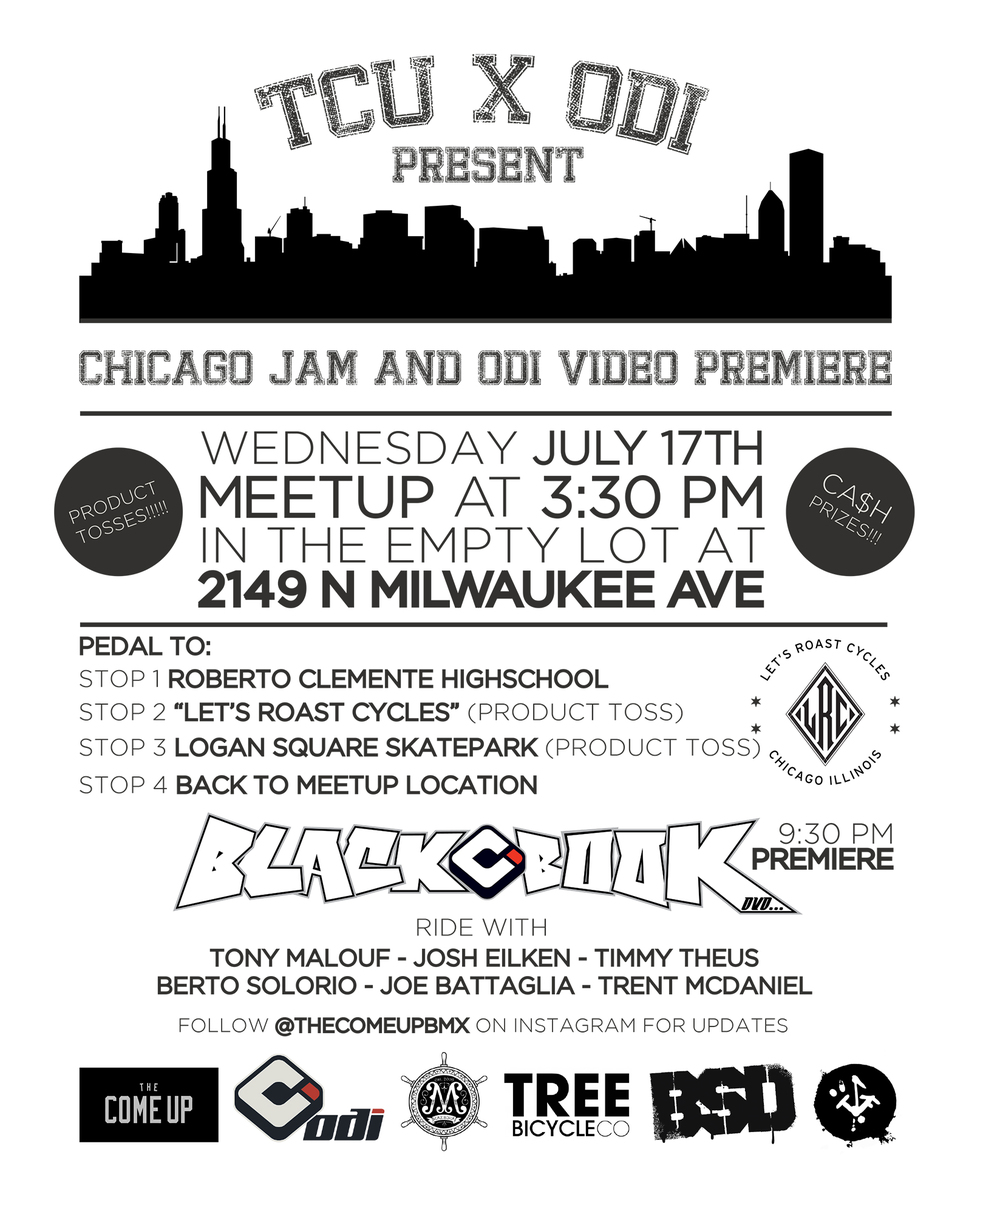 TCU_CHICAGOjam_Flyer_Revision_07.jpg